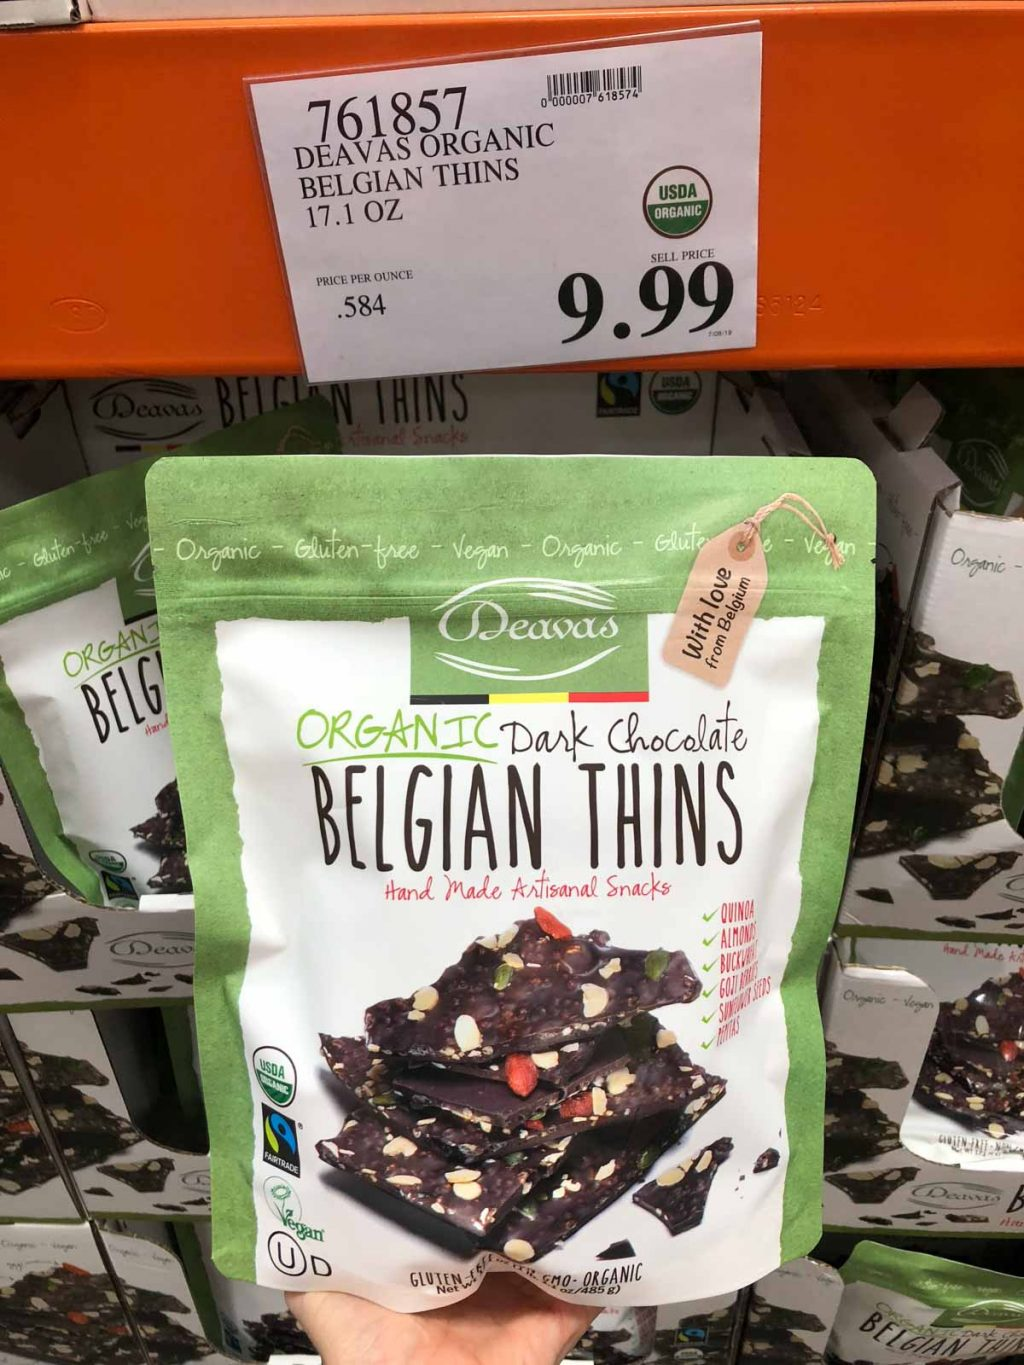 A hand holding a bag of organic vegan dark chocolate thins for $9.99 at Costco